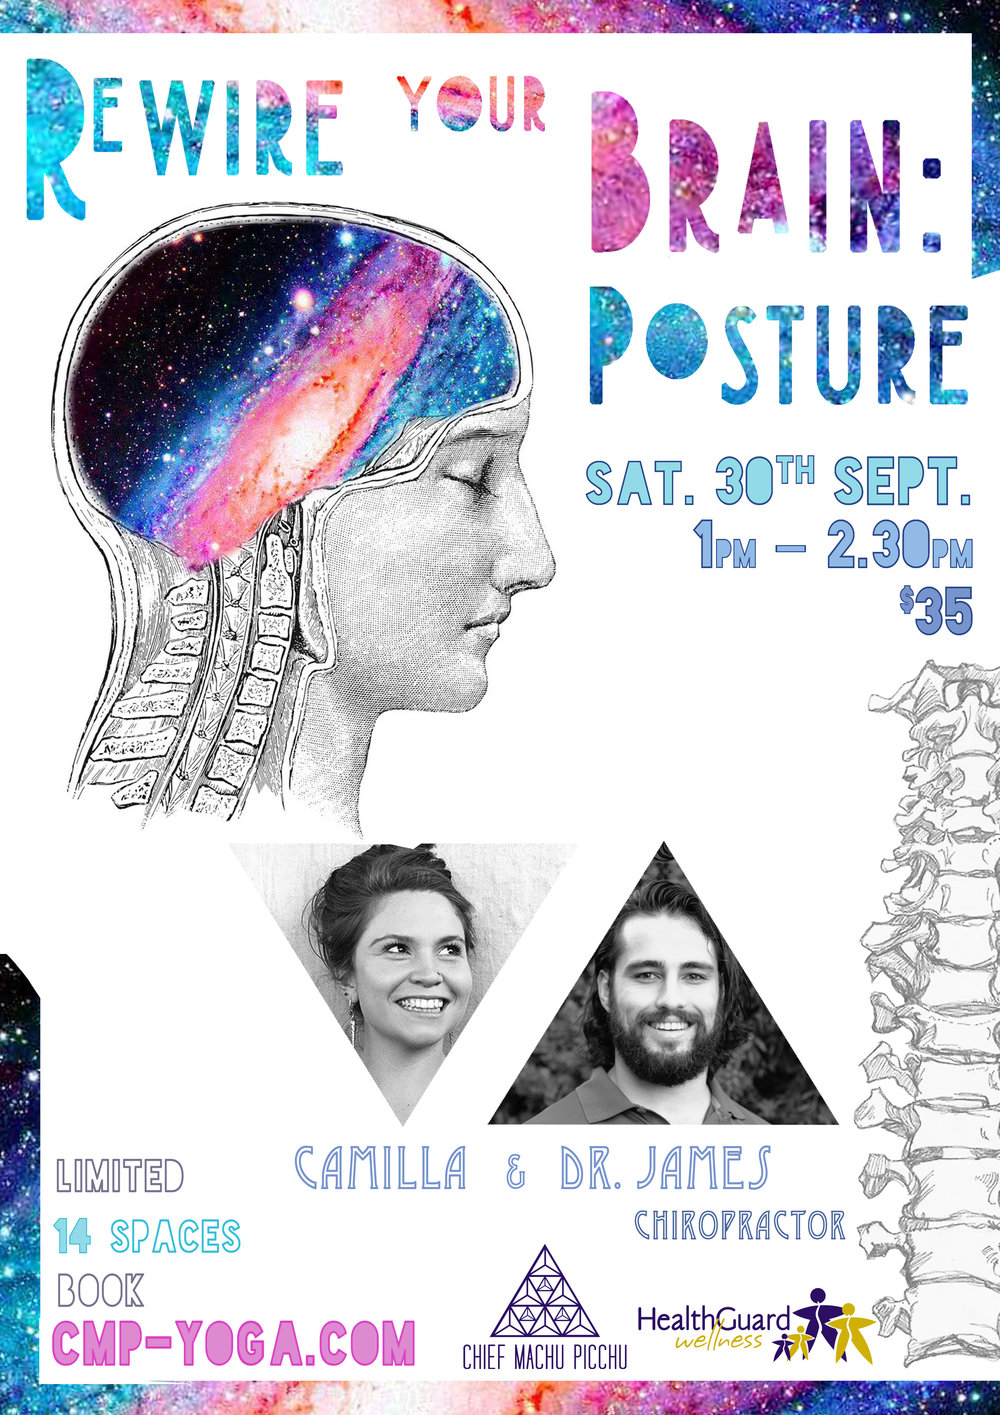 BACK by Popular Demand...   We're running   Rewire Your Brain: Posture AGAIN!   Spots sold out at lightning speed last time, so be sure to book your spot in advance to avoid disappointment!  Interactive Workshop @ Chief Machu Picchu | Sat. 30th September | 1pm - 2.30pm | Limited to 14 Spaces $35  Dr. James MacKay - Chiropractor & Camilla Hall     L E A R N   An interactive workshop addressing the concerns of stress / anxiety / posture and their affect on our nervous / musculoskeletal systems of our bodies.  Here you'll learn how your posture affects your mood and mental wellbeing. Techniques will be taught on how to enhance the power of your breath and make simple adjustments of your posture to physically alter your mental state.  ~ A simple approach to viewing your health in a holistic way  ~ Understand the link between posture, gut health, and your hormonal system.  ~ Learn simple exercises and stretches to improve your posture, de-stress your nervous system and get your health back on track    Join us, Dr. James - Chiropractor and Camilla, to learn more on how you can boost your self confidence, enhance your mood and live a life full of vitality; we all have the ability to do so!      B O O K     Limited to 14 Spaces  | Please be sure to book your spot to ensure you don't miss out      CLICK HERE FOR FACEBOOK EVENT